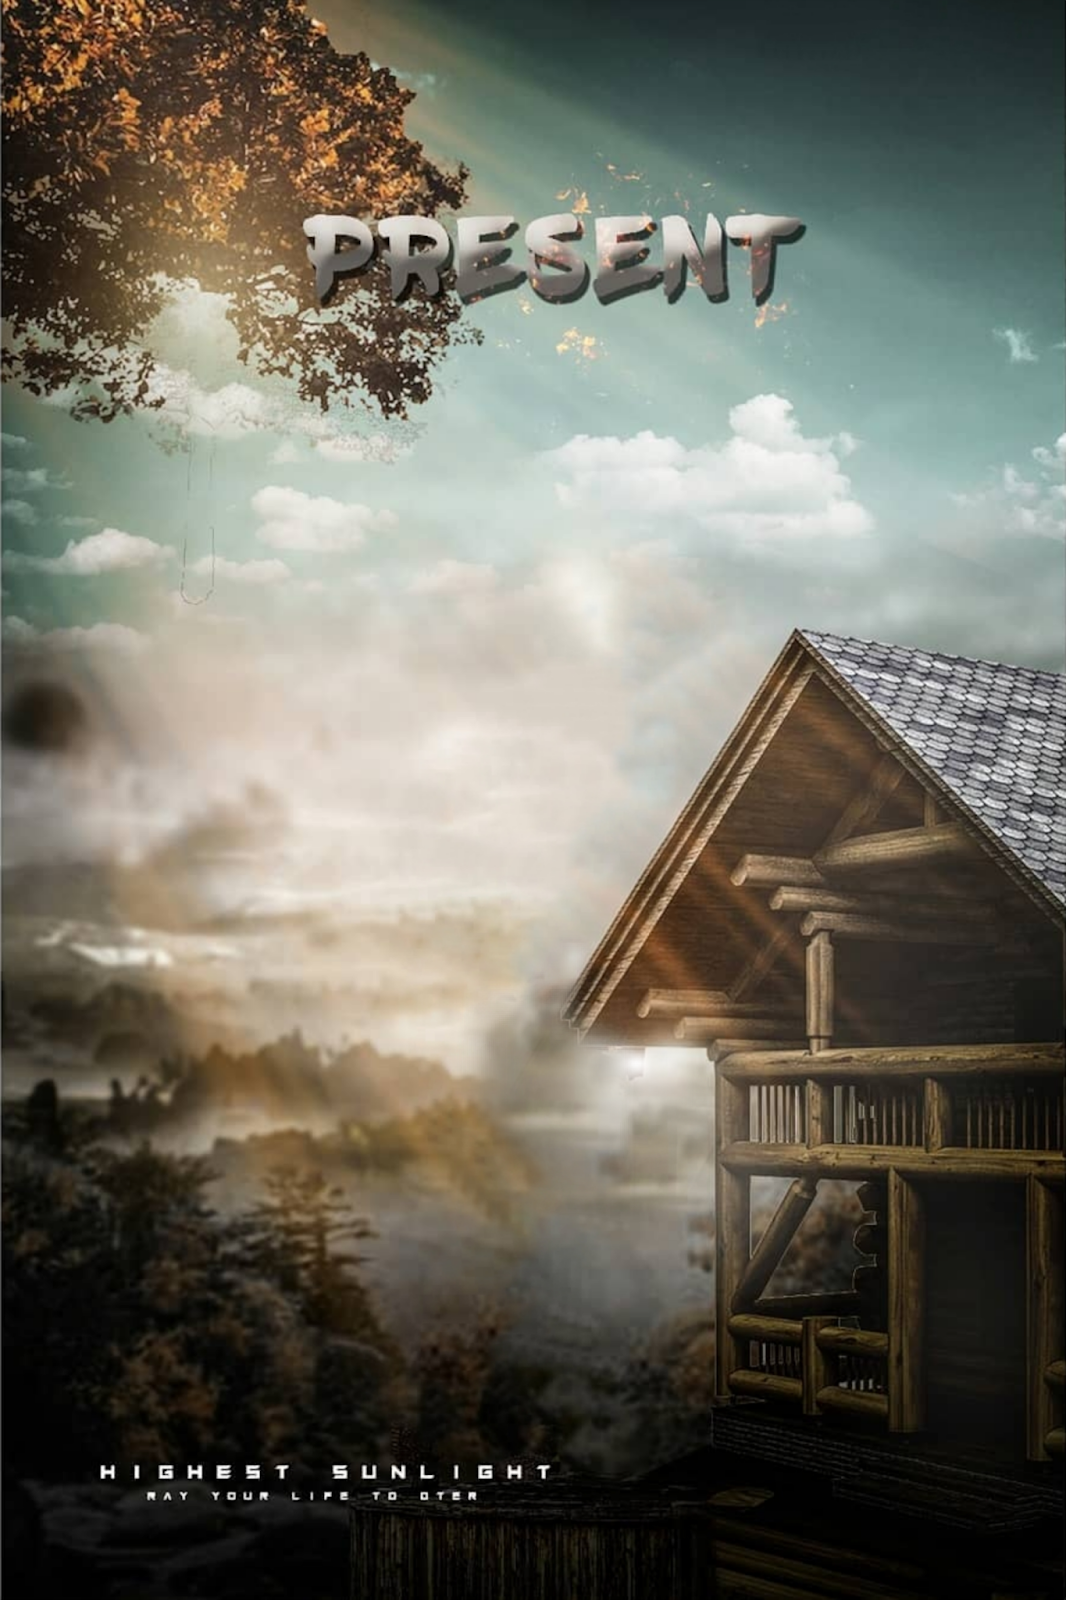 Movie Poster Background Hd Collection 2020 For Editing In 2020 Best Background Images New Background Images Background Images